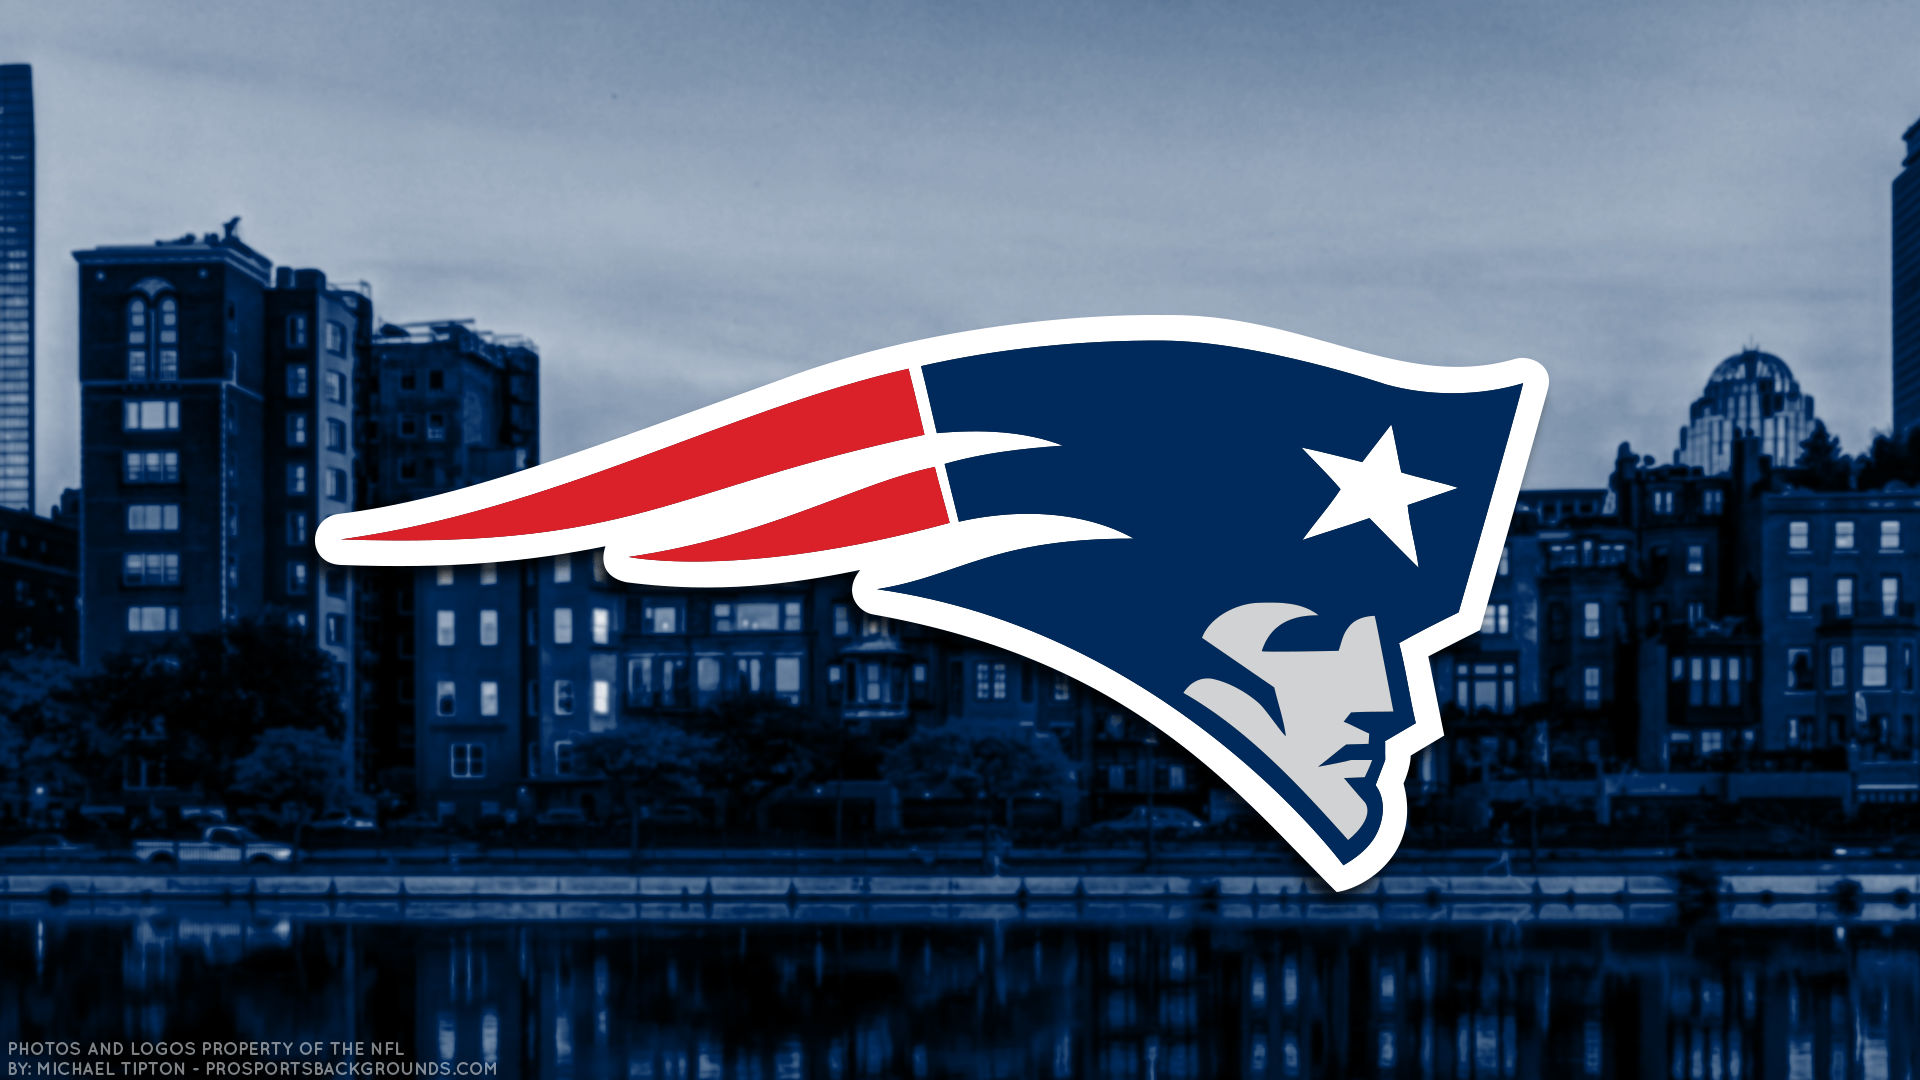 Wallpaper iphone patriots - 2017 New England Patriots Wallpapers Pc Iphone Android